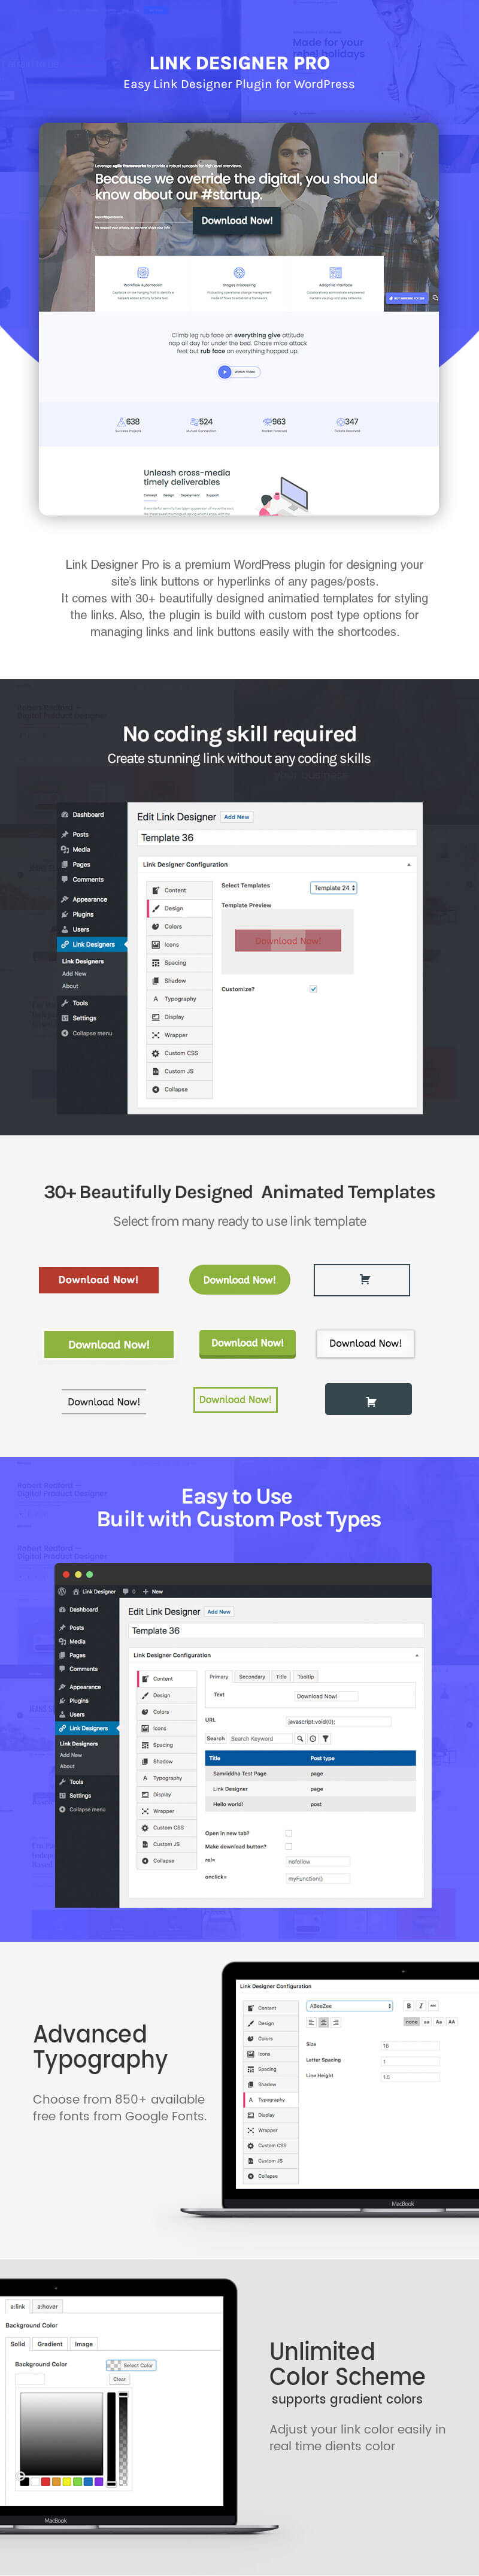 Link Designer – Premium Link Designer Plugin for WordPress